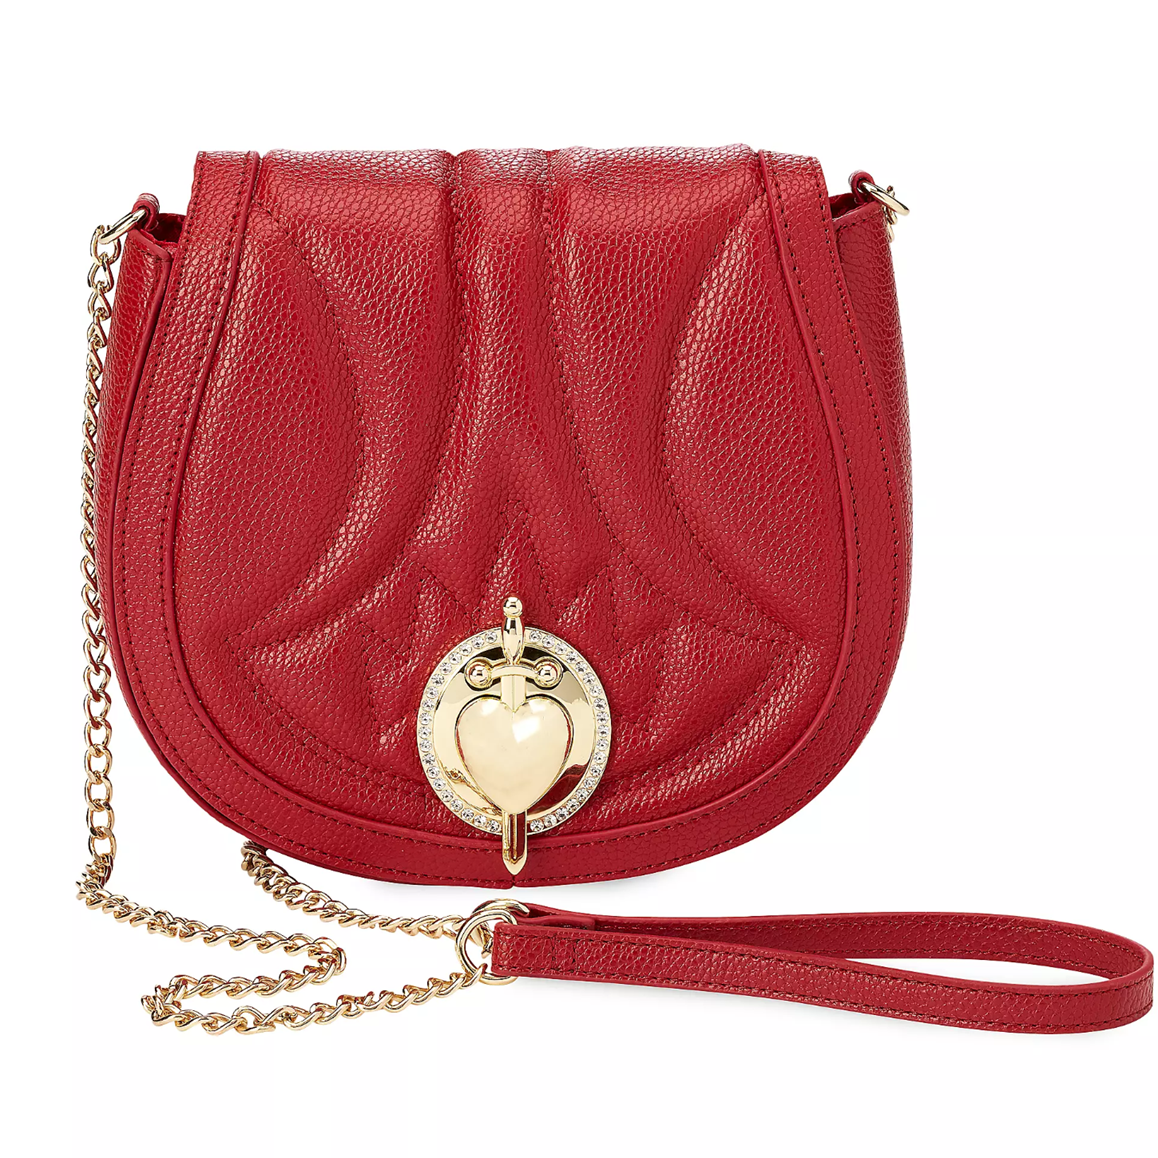 Evil Queen Crossbody Bag – Snow White and the Seven Dwarfs